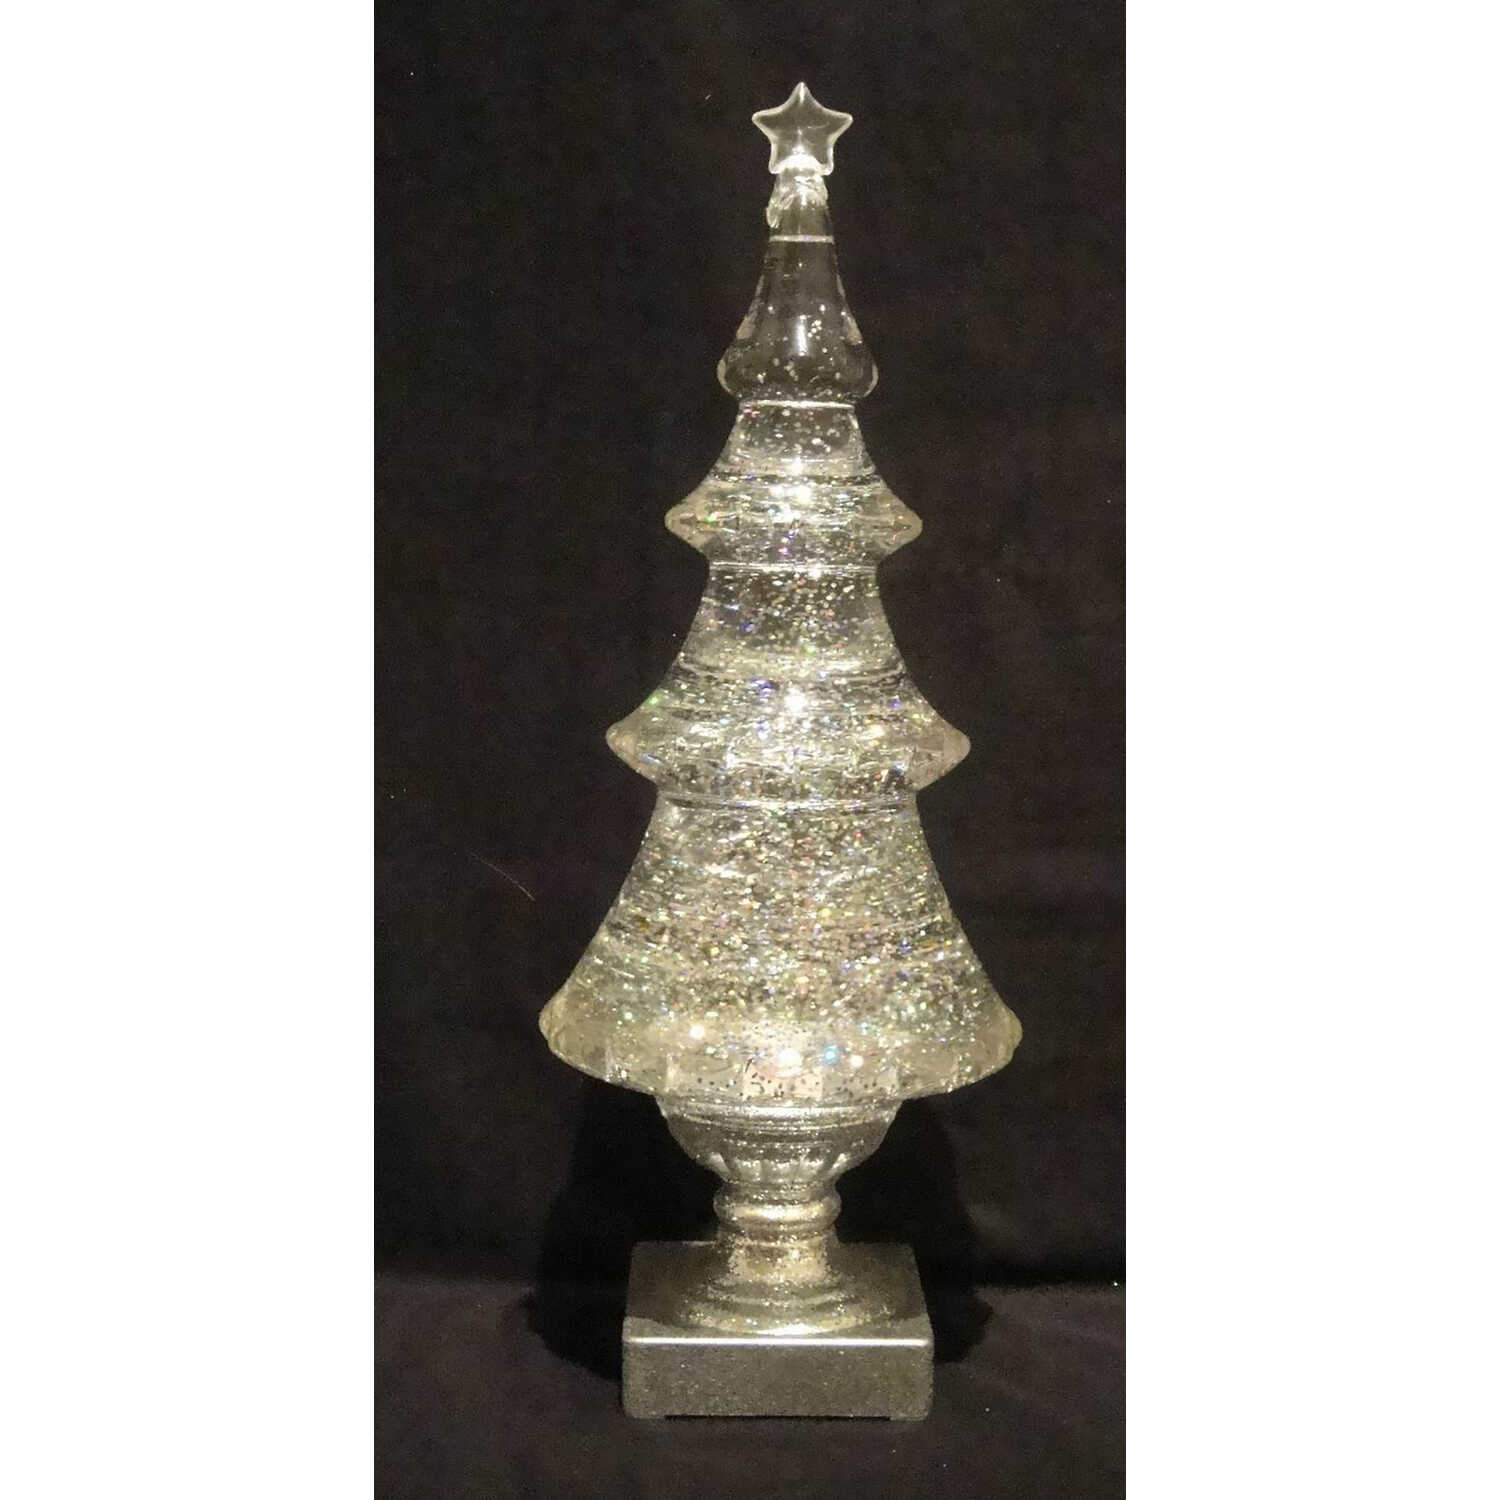 Roman  LED Swirl Tree  Christmas Figurine  1 pk Clear  Plastic